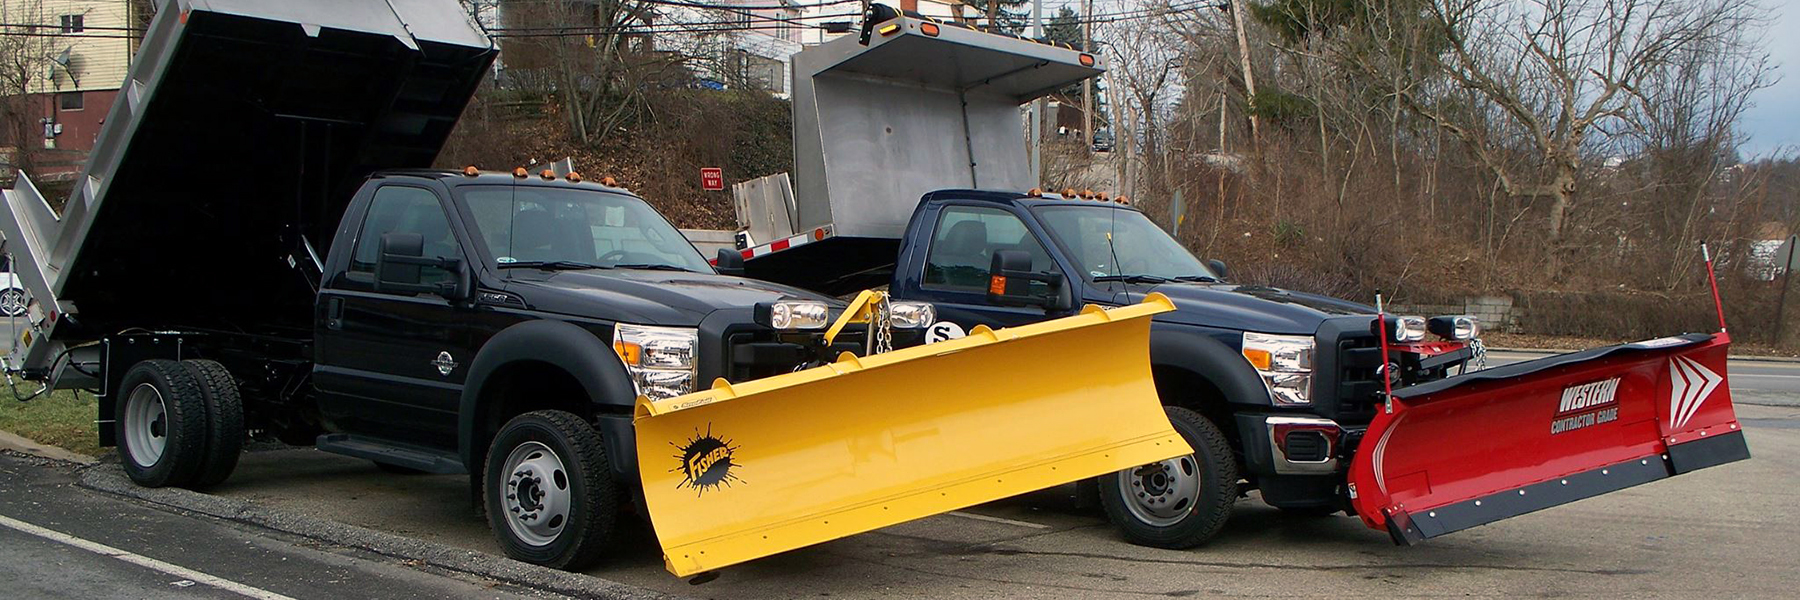 Home Push N Pull Pittsburgh Area Snow Plow Salt